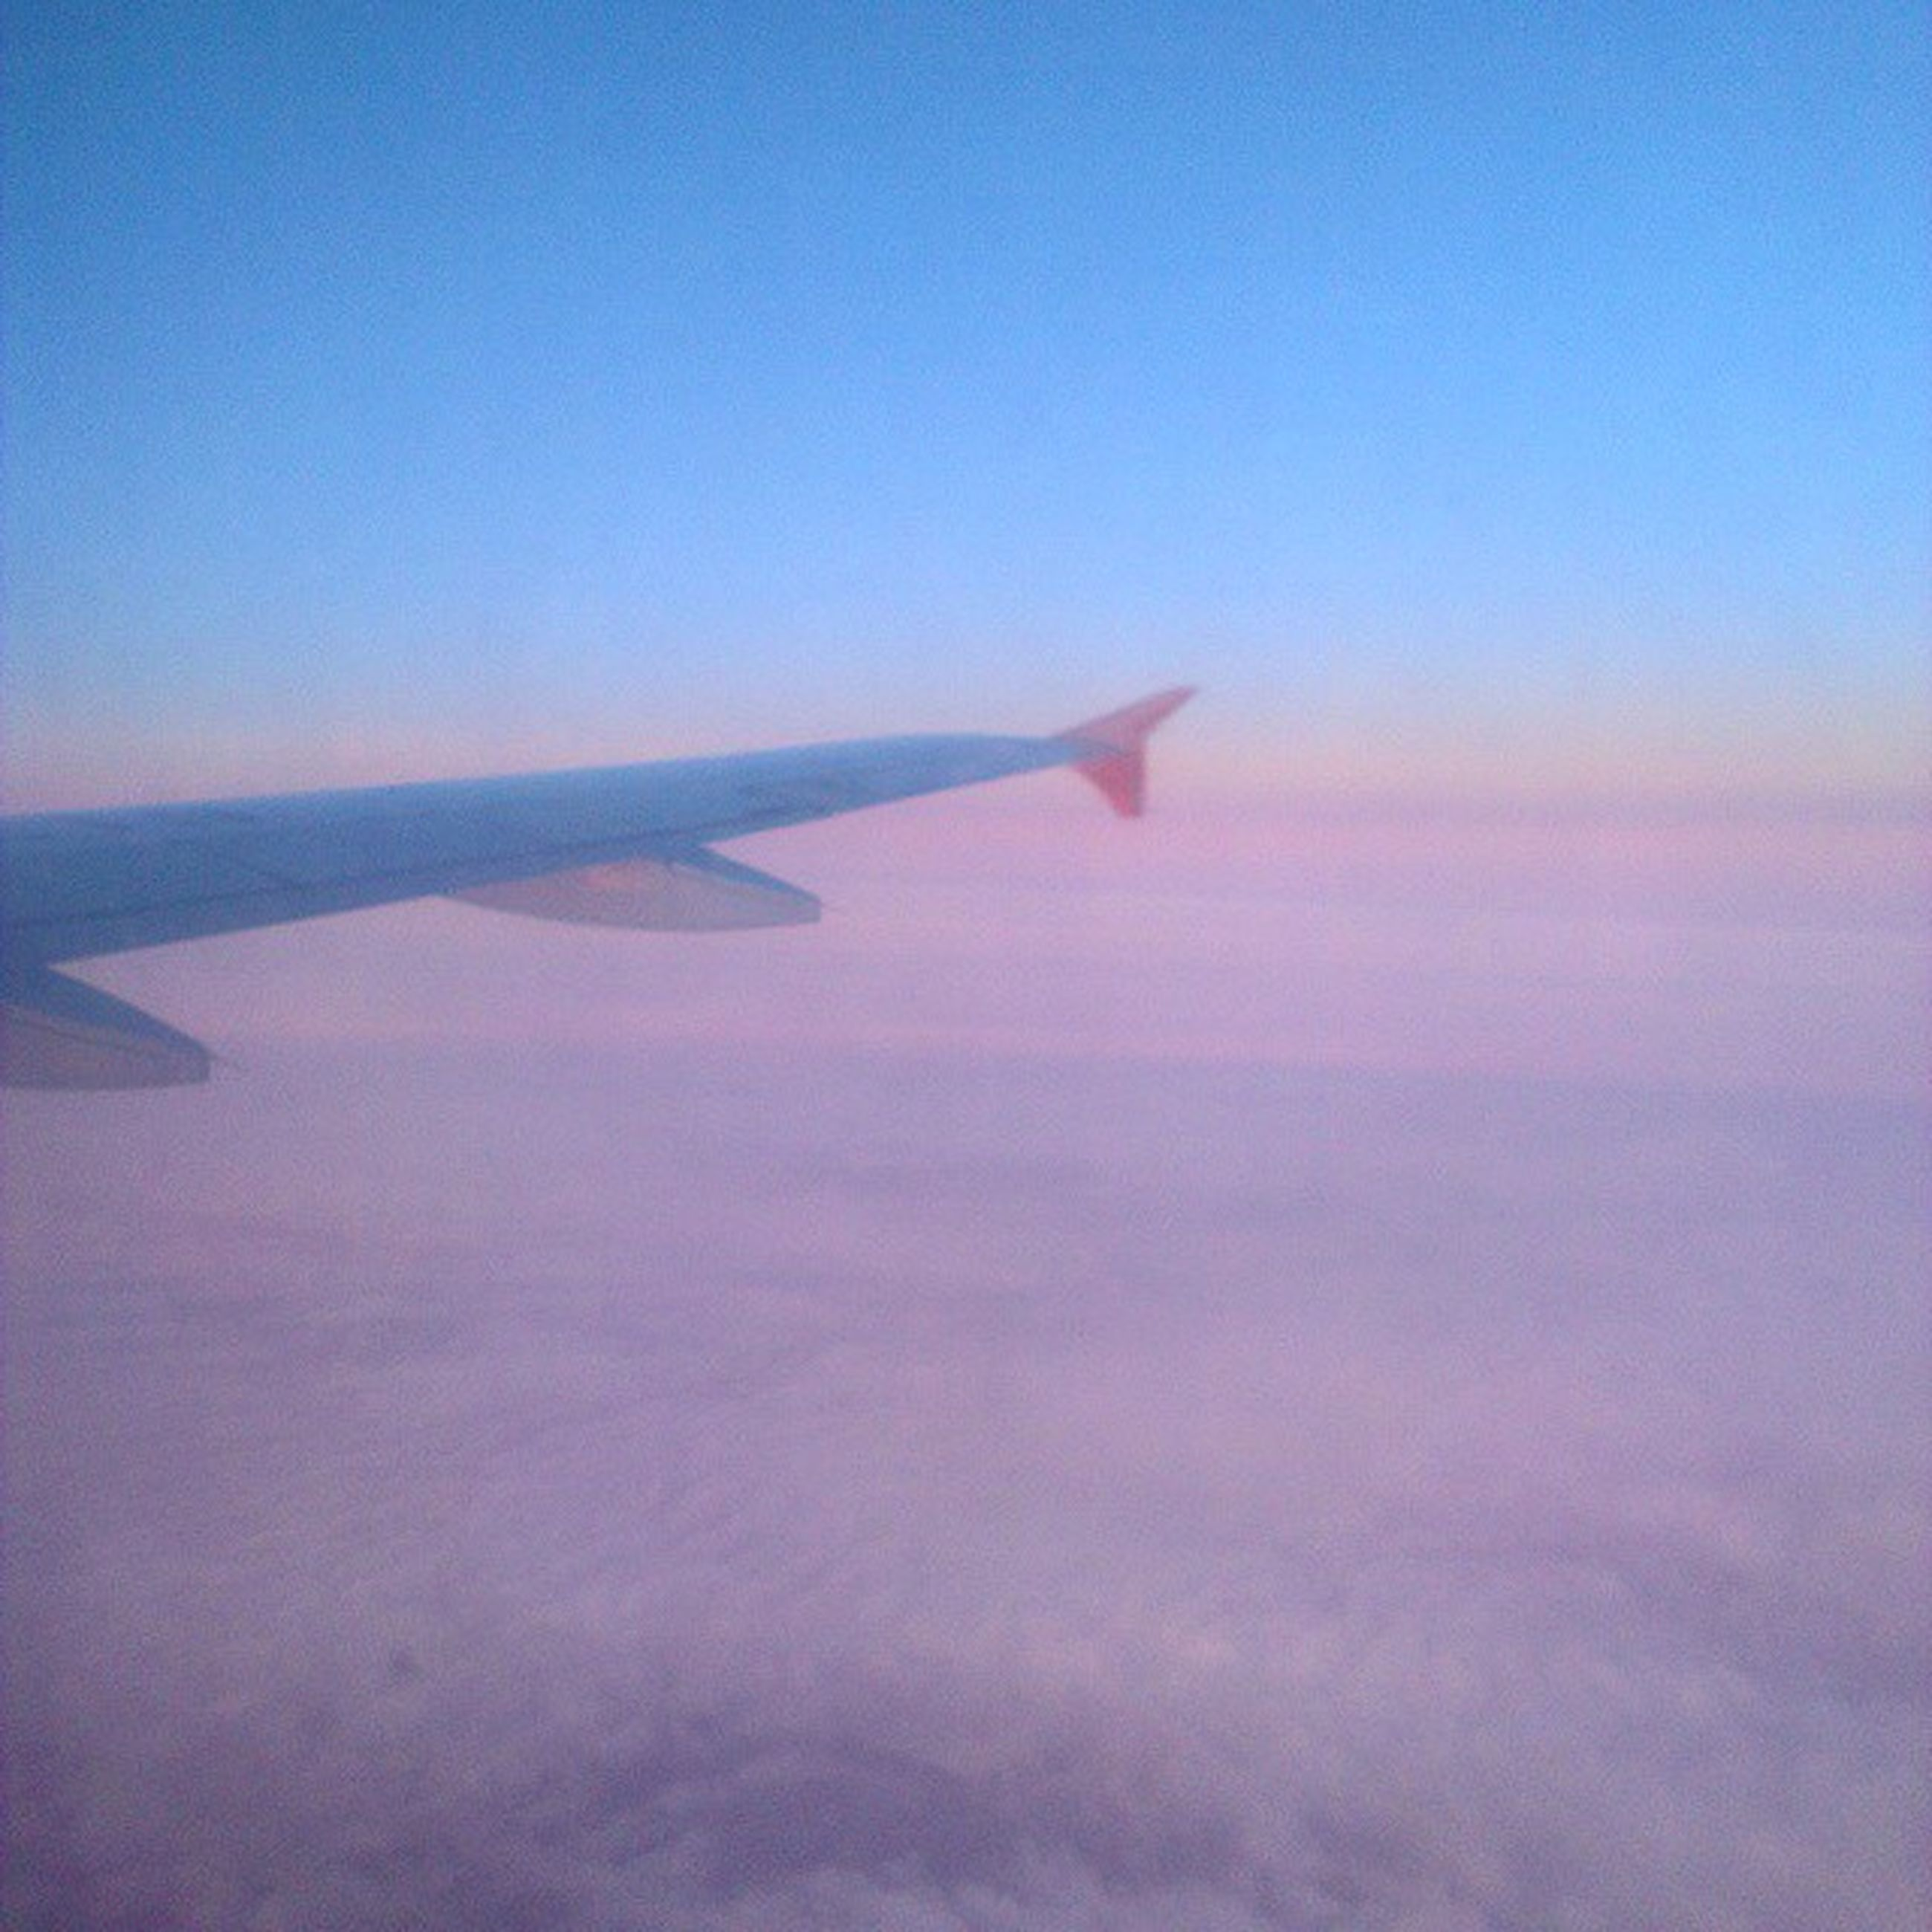 flying, airplane, air vehicle, transportation, aircraft wing, mode of transport, aerial view, part of, blue, cropped, mid-air, travel, sky, journey, on the move, copy space, nature, scenics, beauty in nature, public transportation